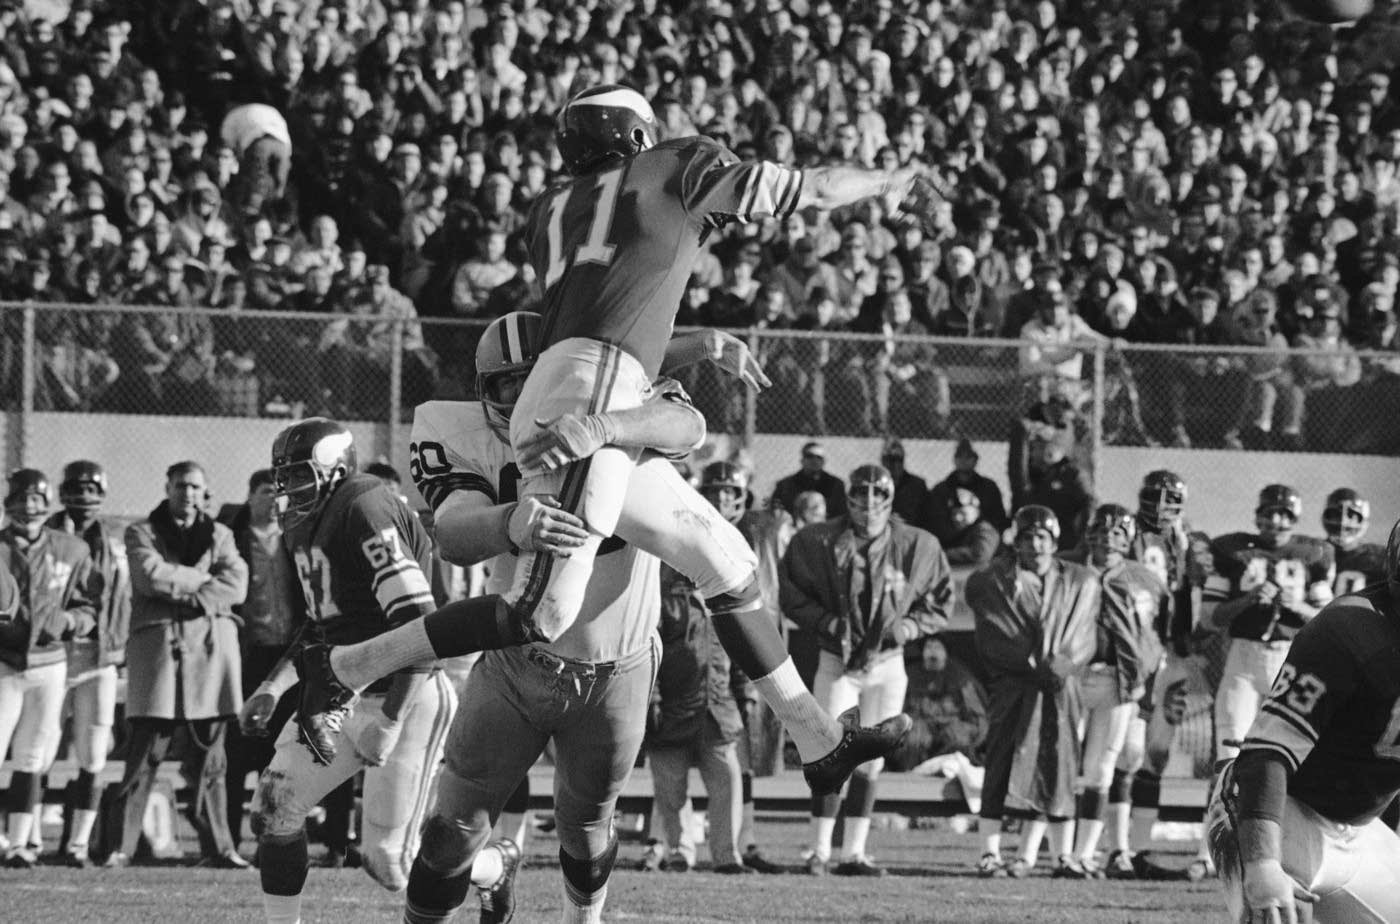 8_Joe_Kapp_frequently_played_with_injuries_but_never_missed_a_start_in_the_NFL_or_CFL.